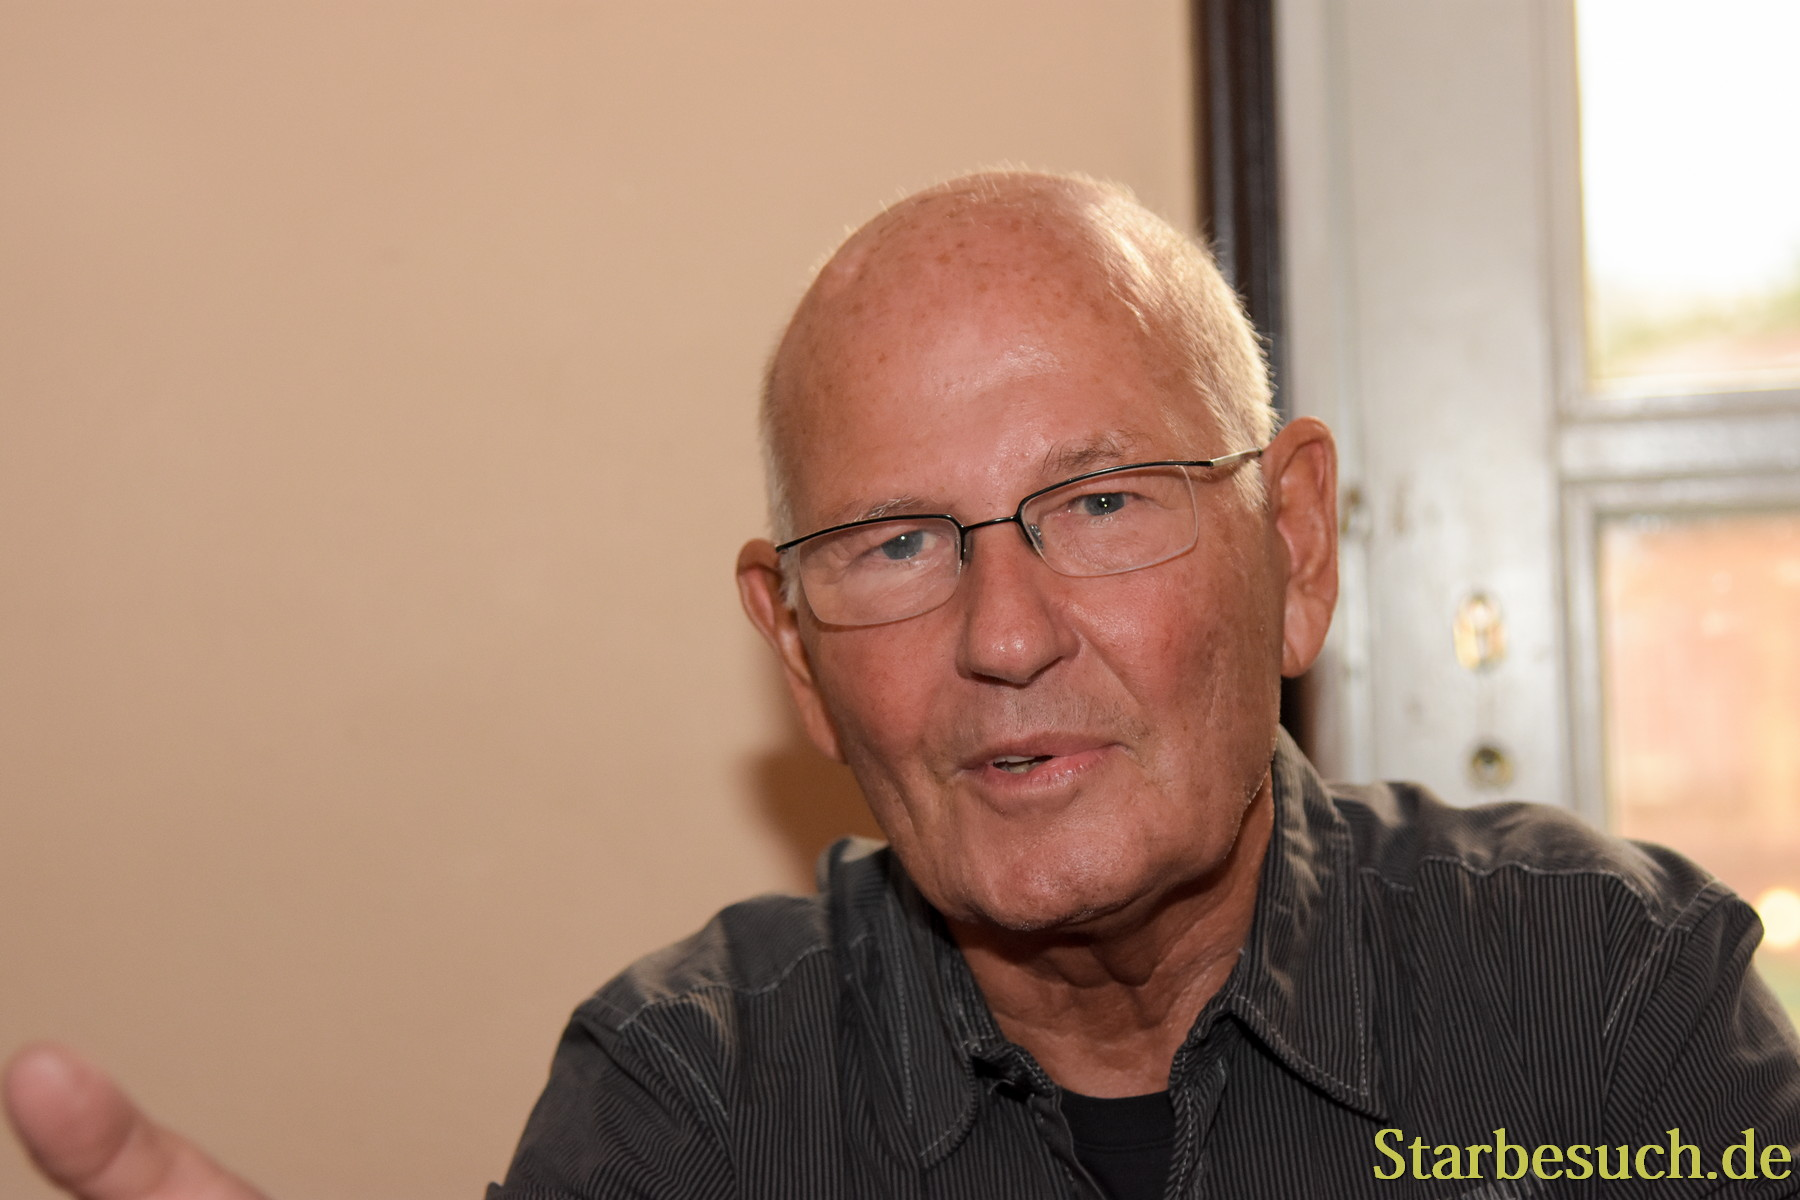 September 2nd, 2017. Mannheim, Germany. Ernst Meincke, german voice of Captain Picard in Star Trek: TNG, was the host of Startopia.´Star Trek Actors and Trekkies got together at this convention in Mannheim, Germany